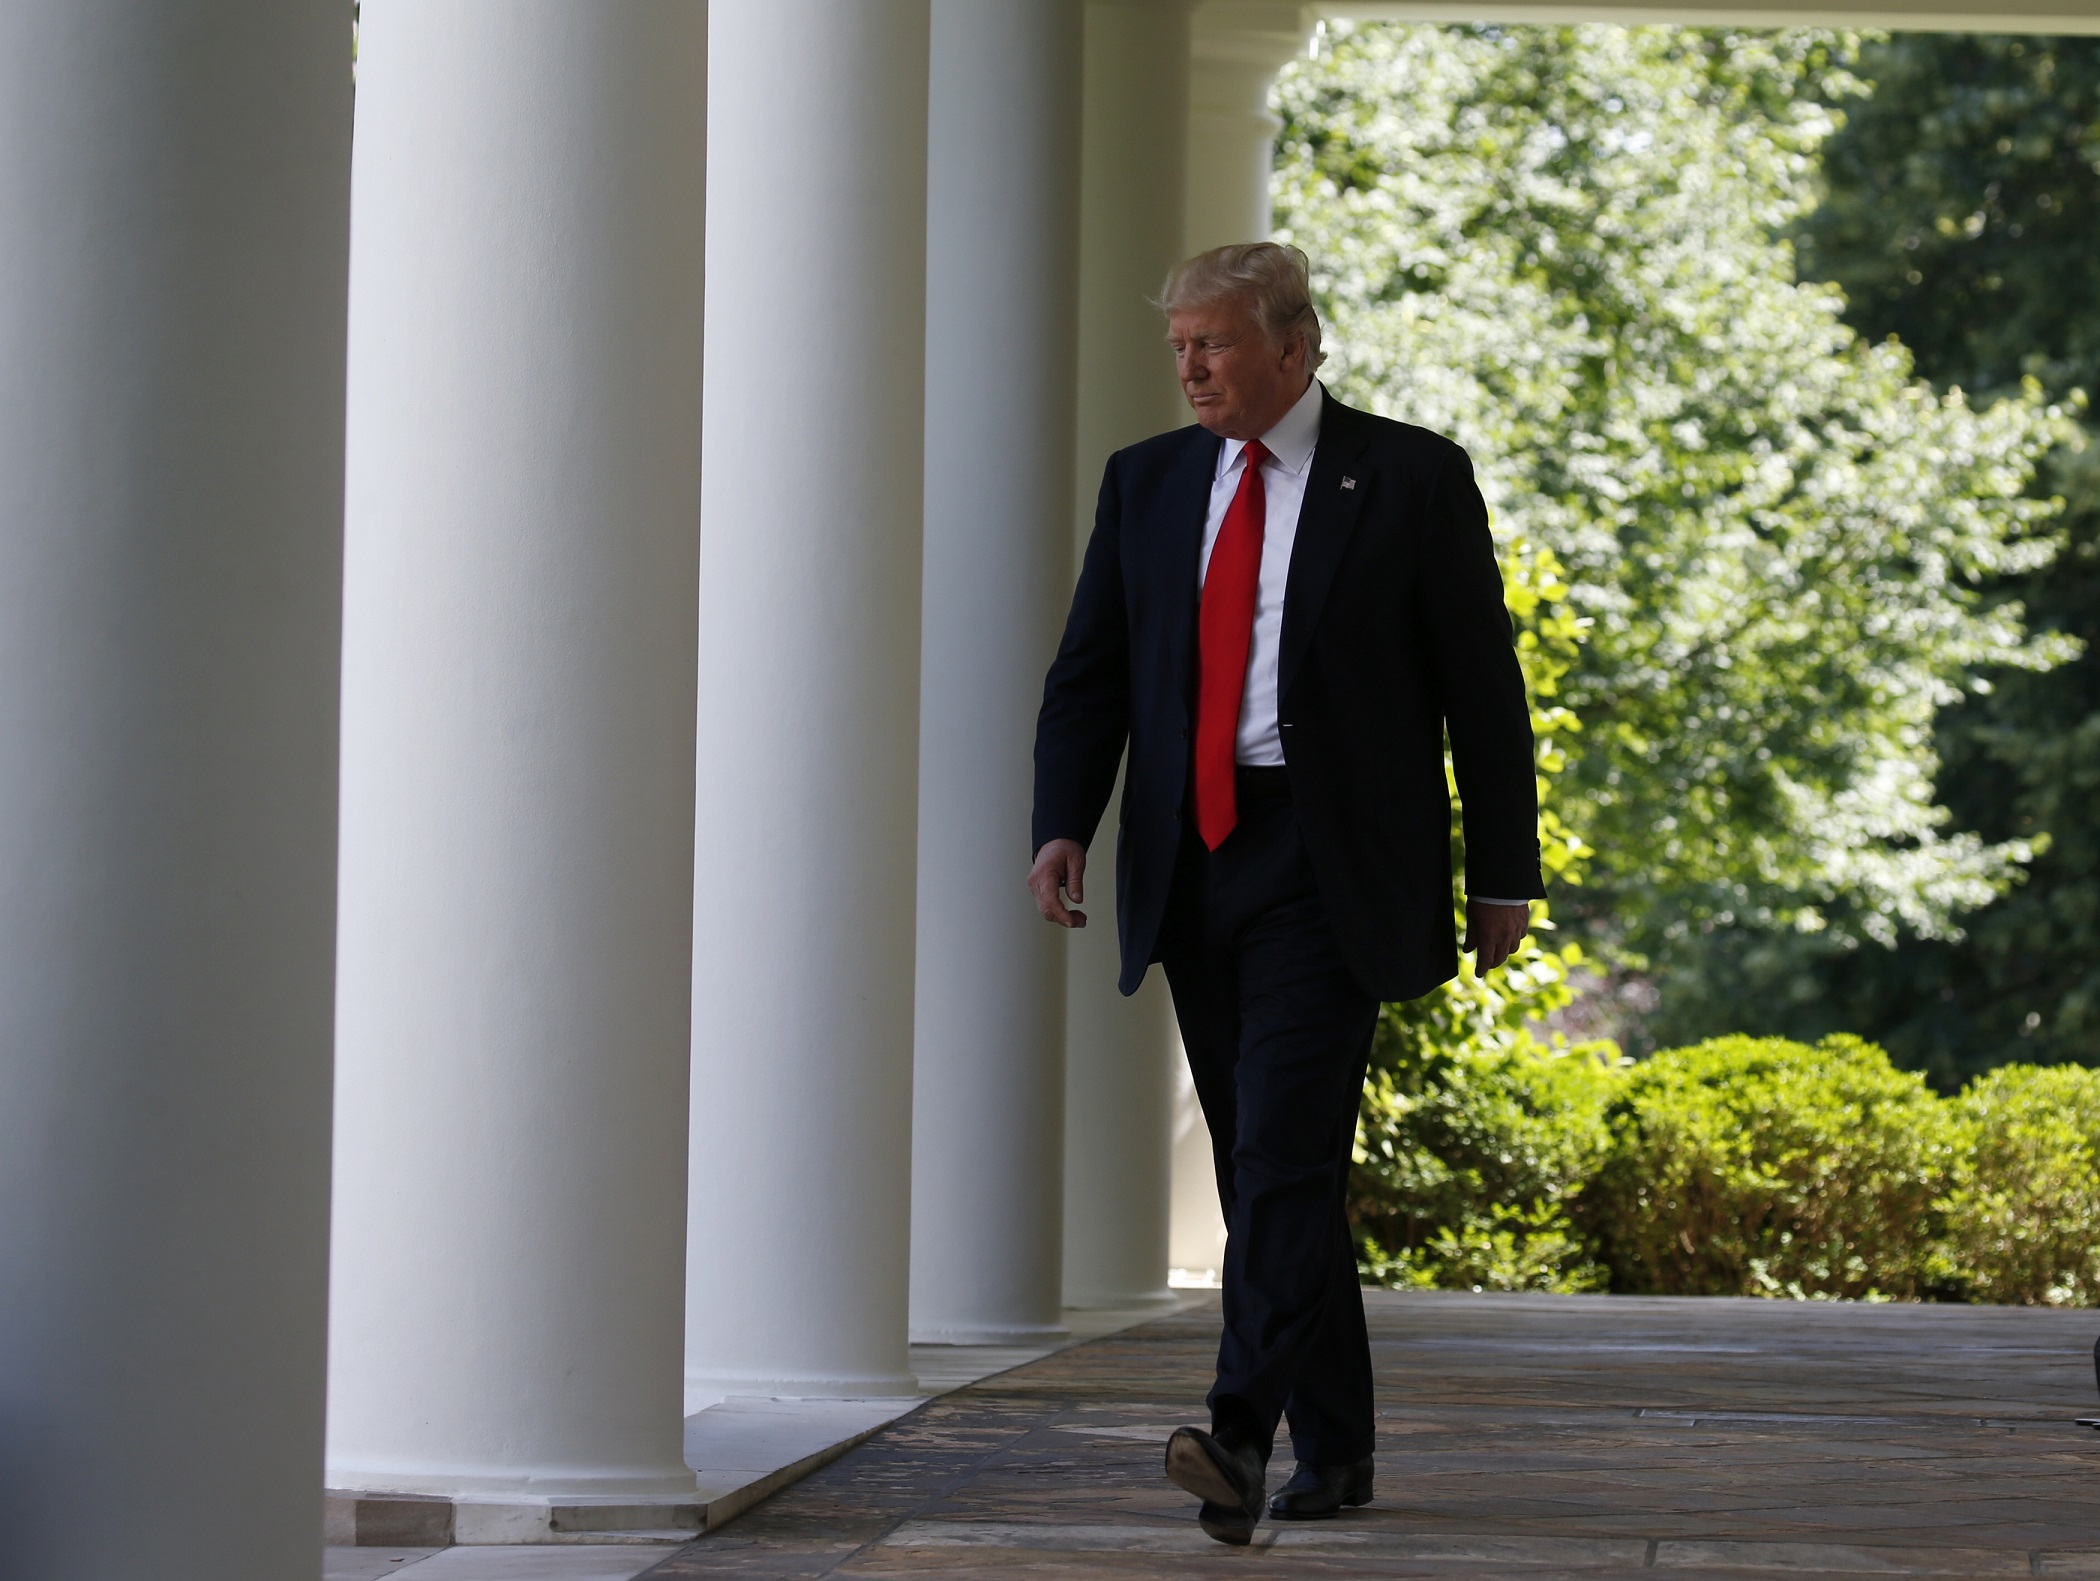 U.S. President Donald Trump arrives to announce his decision that the United States will withdraw from the landmark Paris Climate Agreement, in the Rose Garden of the White House in Washington, U.S., June 1, 2017. REUTERS/Joshua Roberts - HP1ED611IUY0I